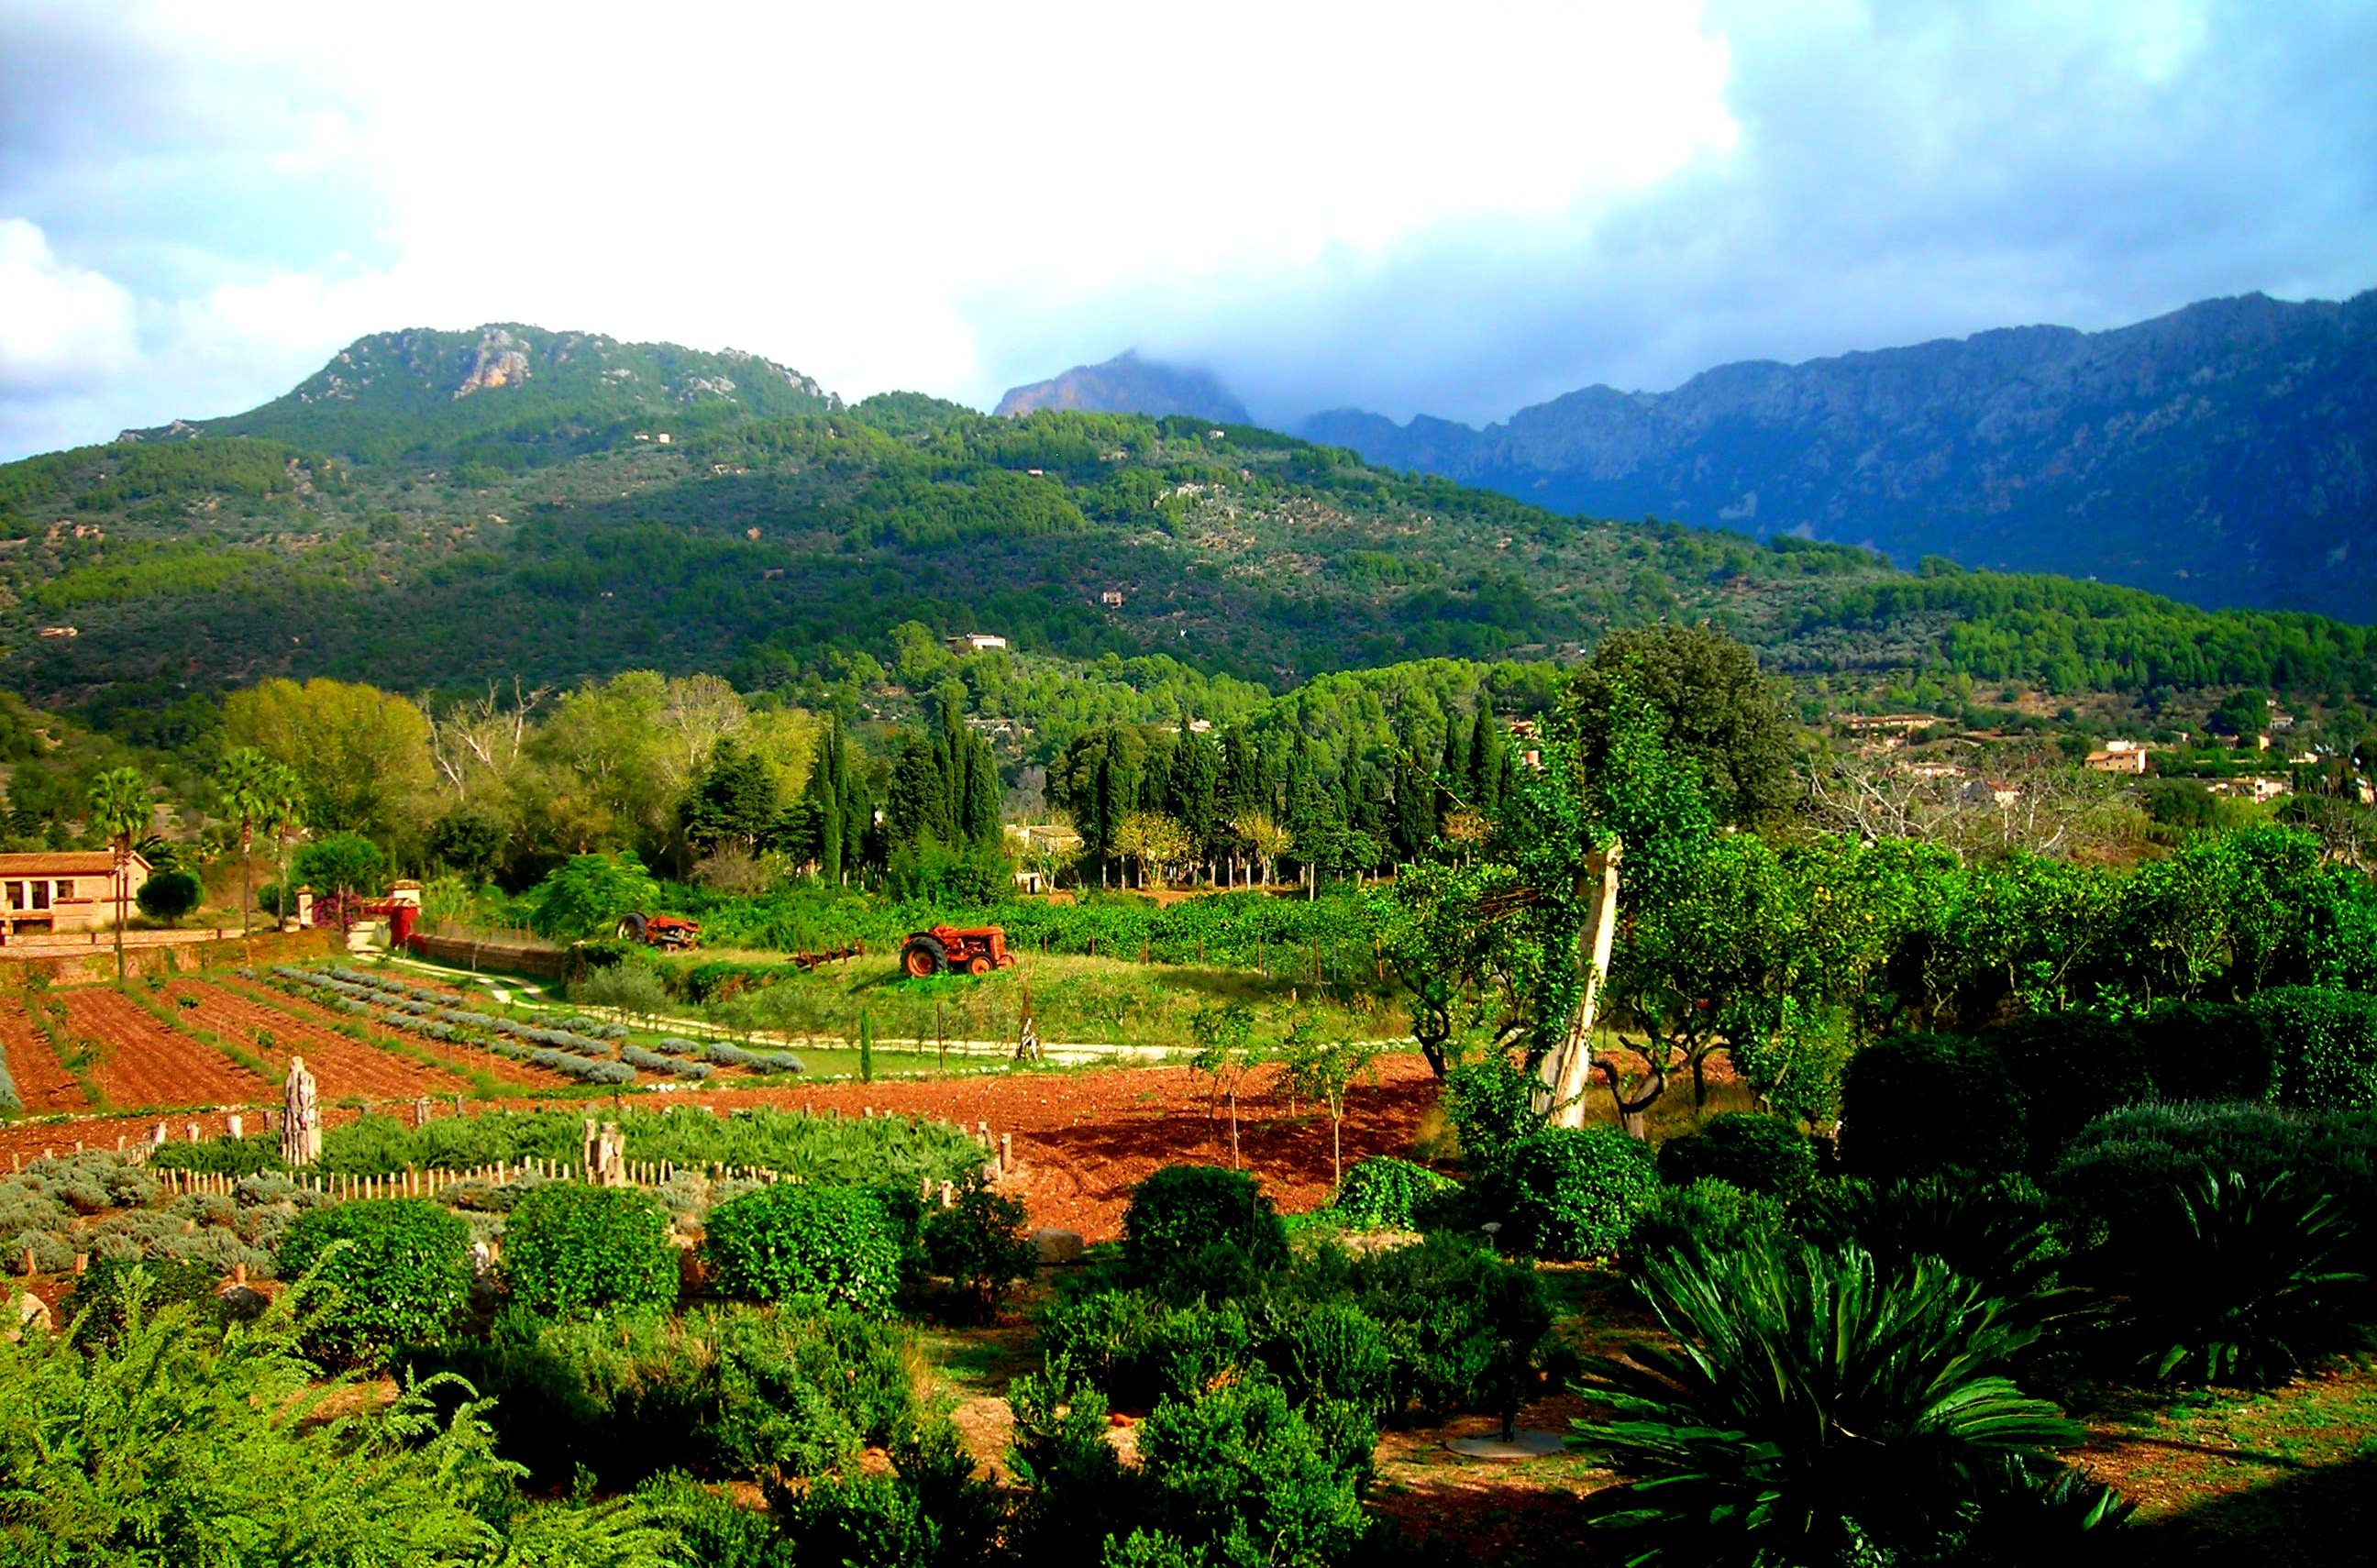 The Sierra de Tramuntana Mountains of Palma de Majorca - that invites hikers, climbers and charms every visitor.